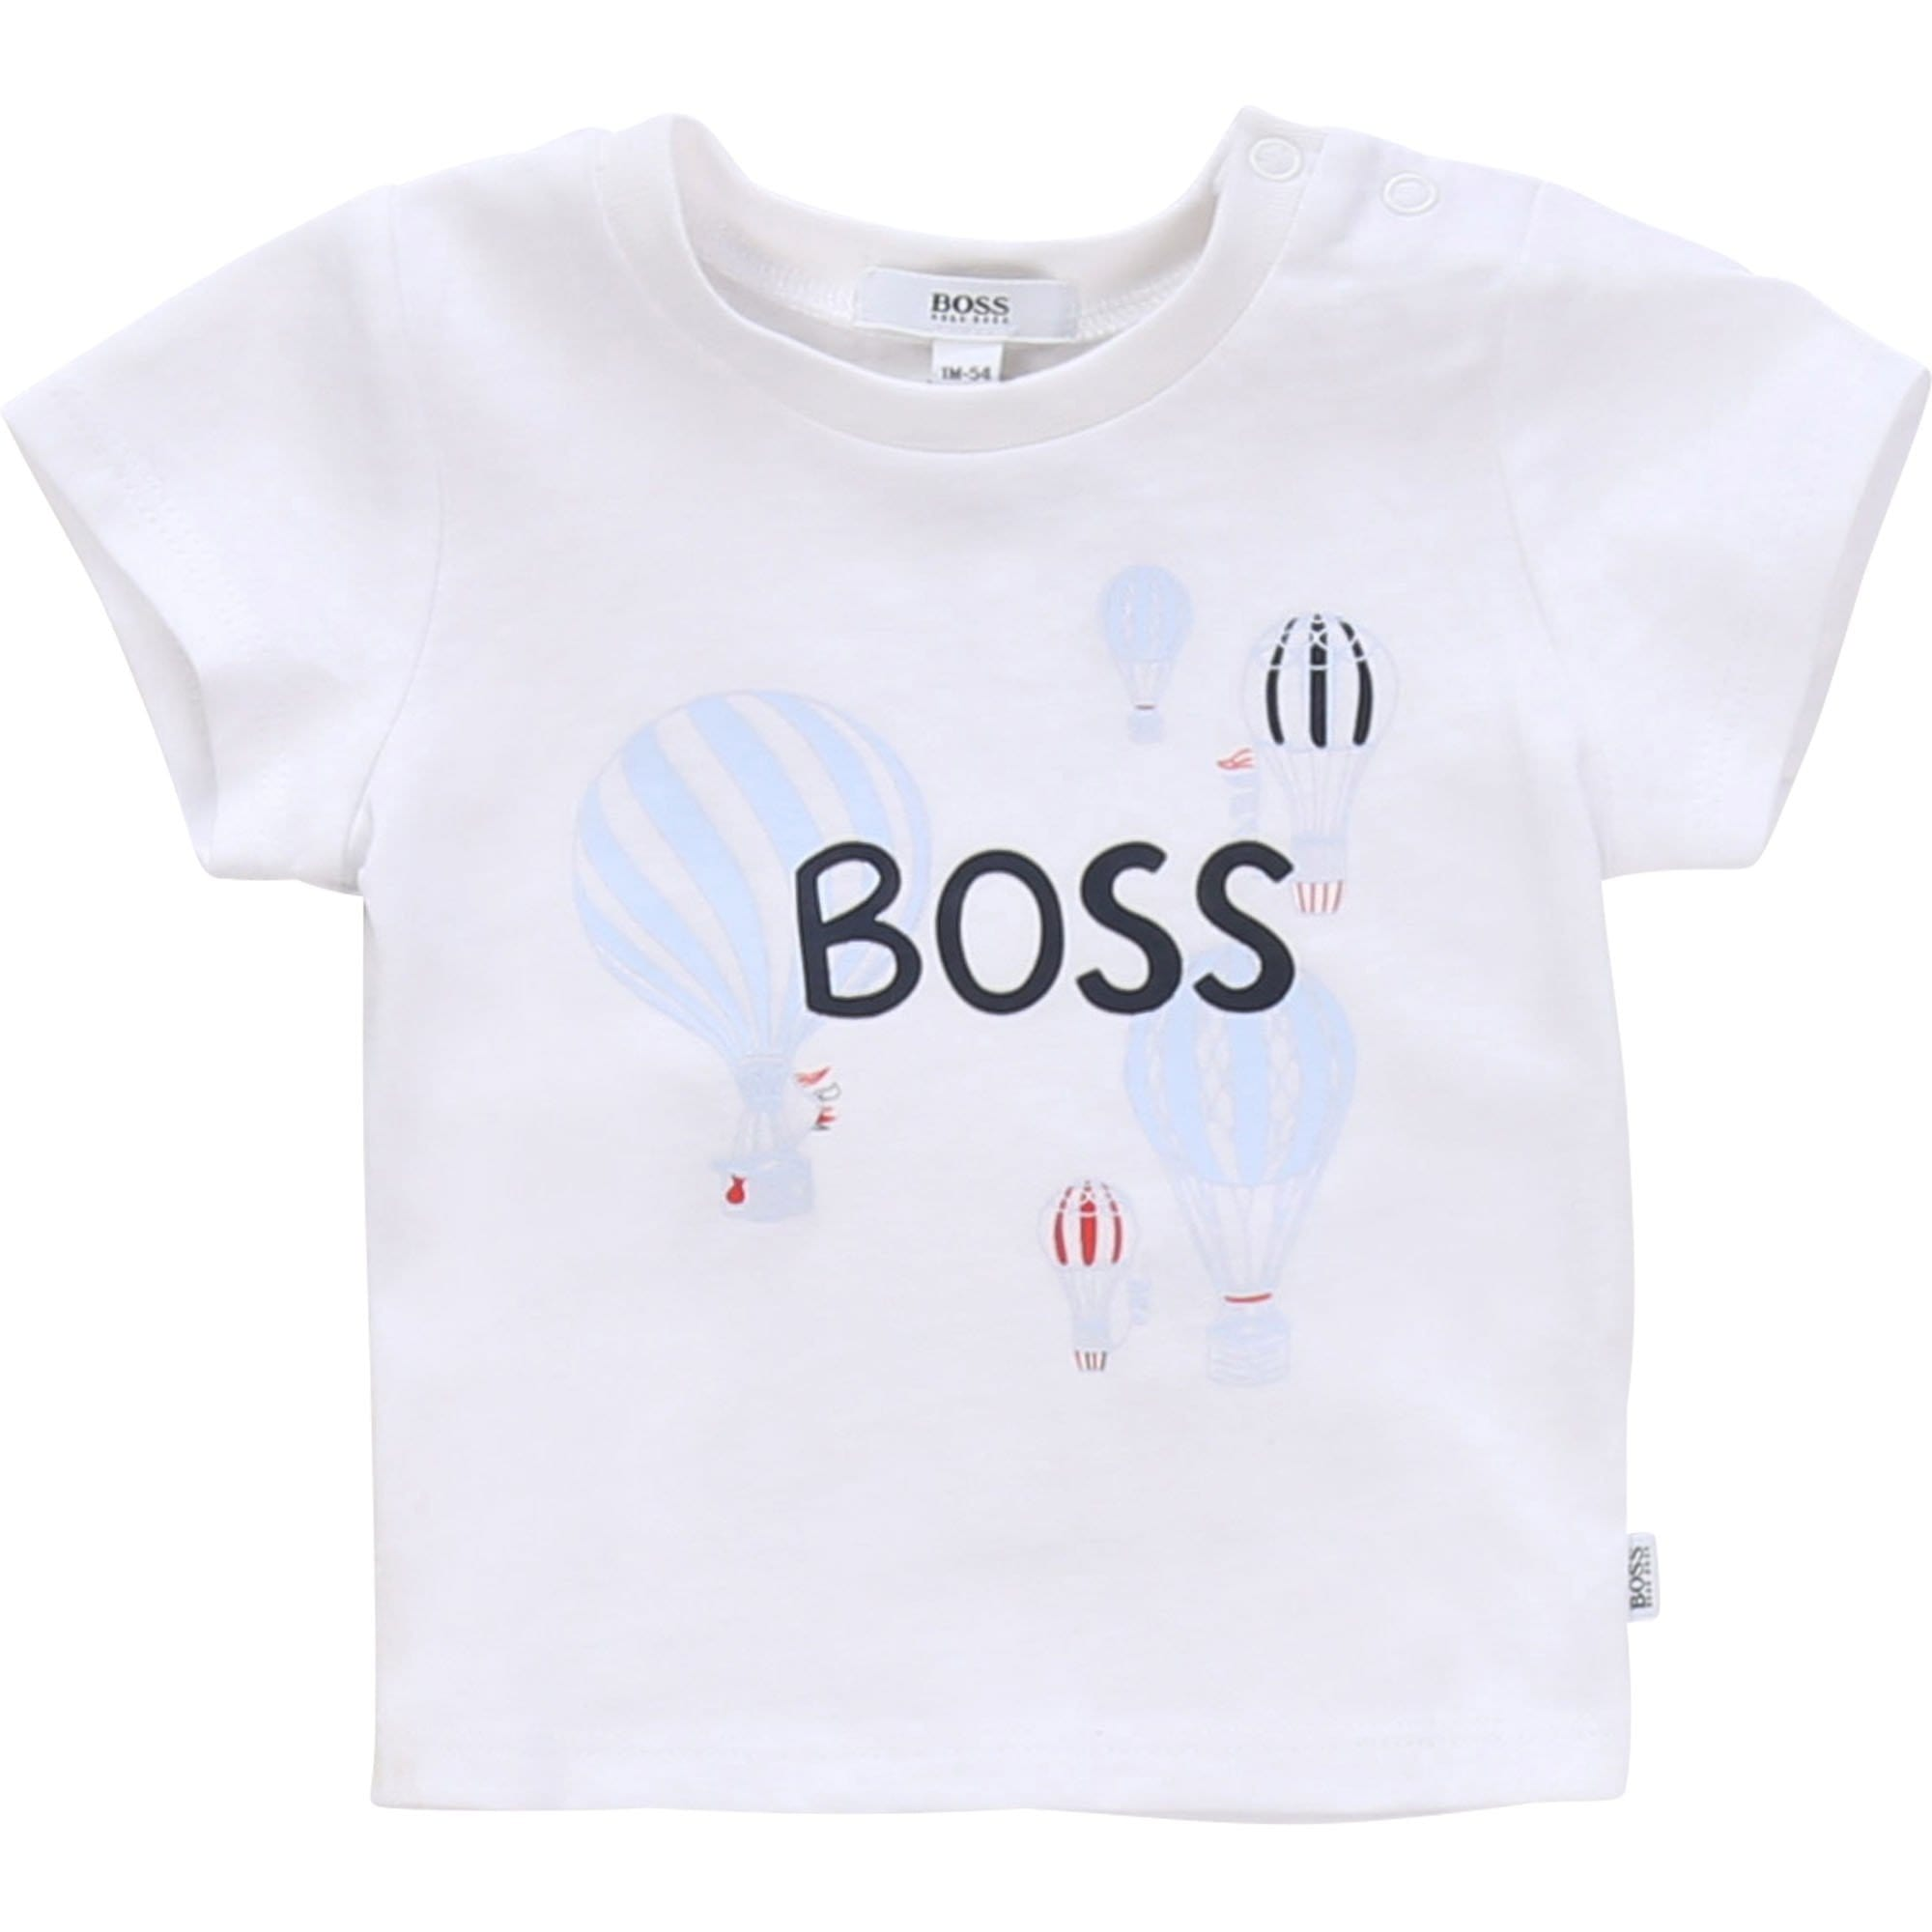 Hugo Boss Short Sleeve T-Shirt J95283/10B